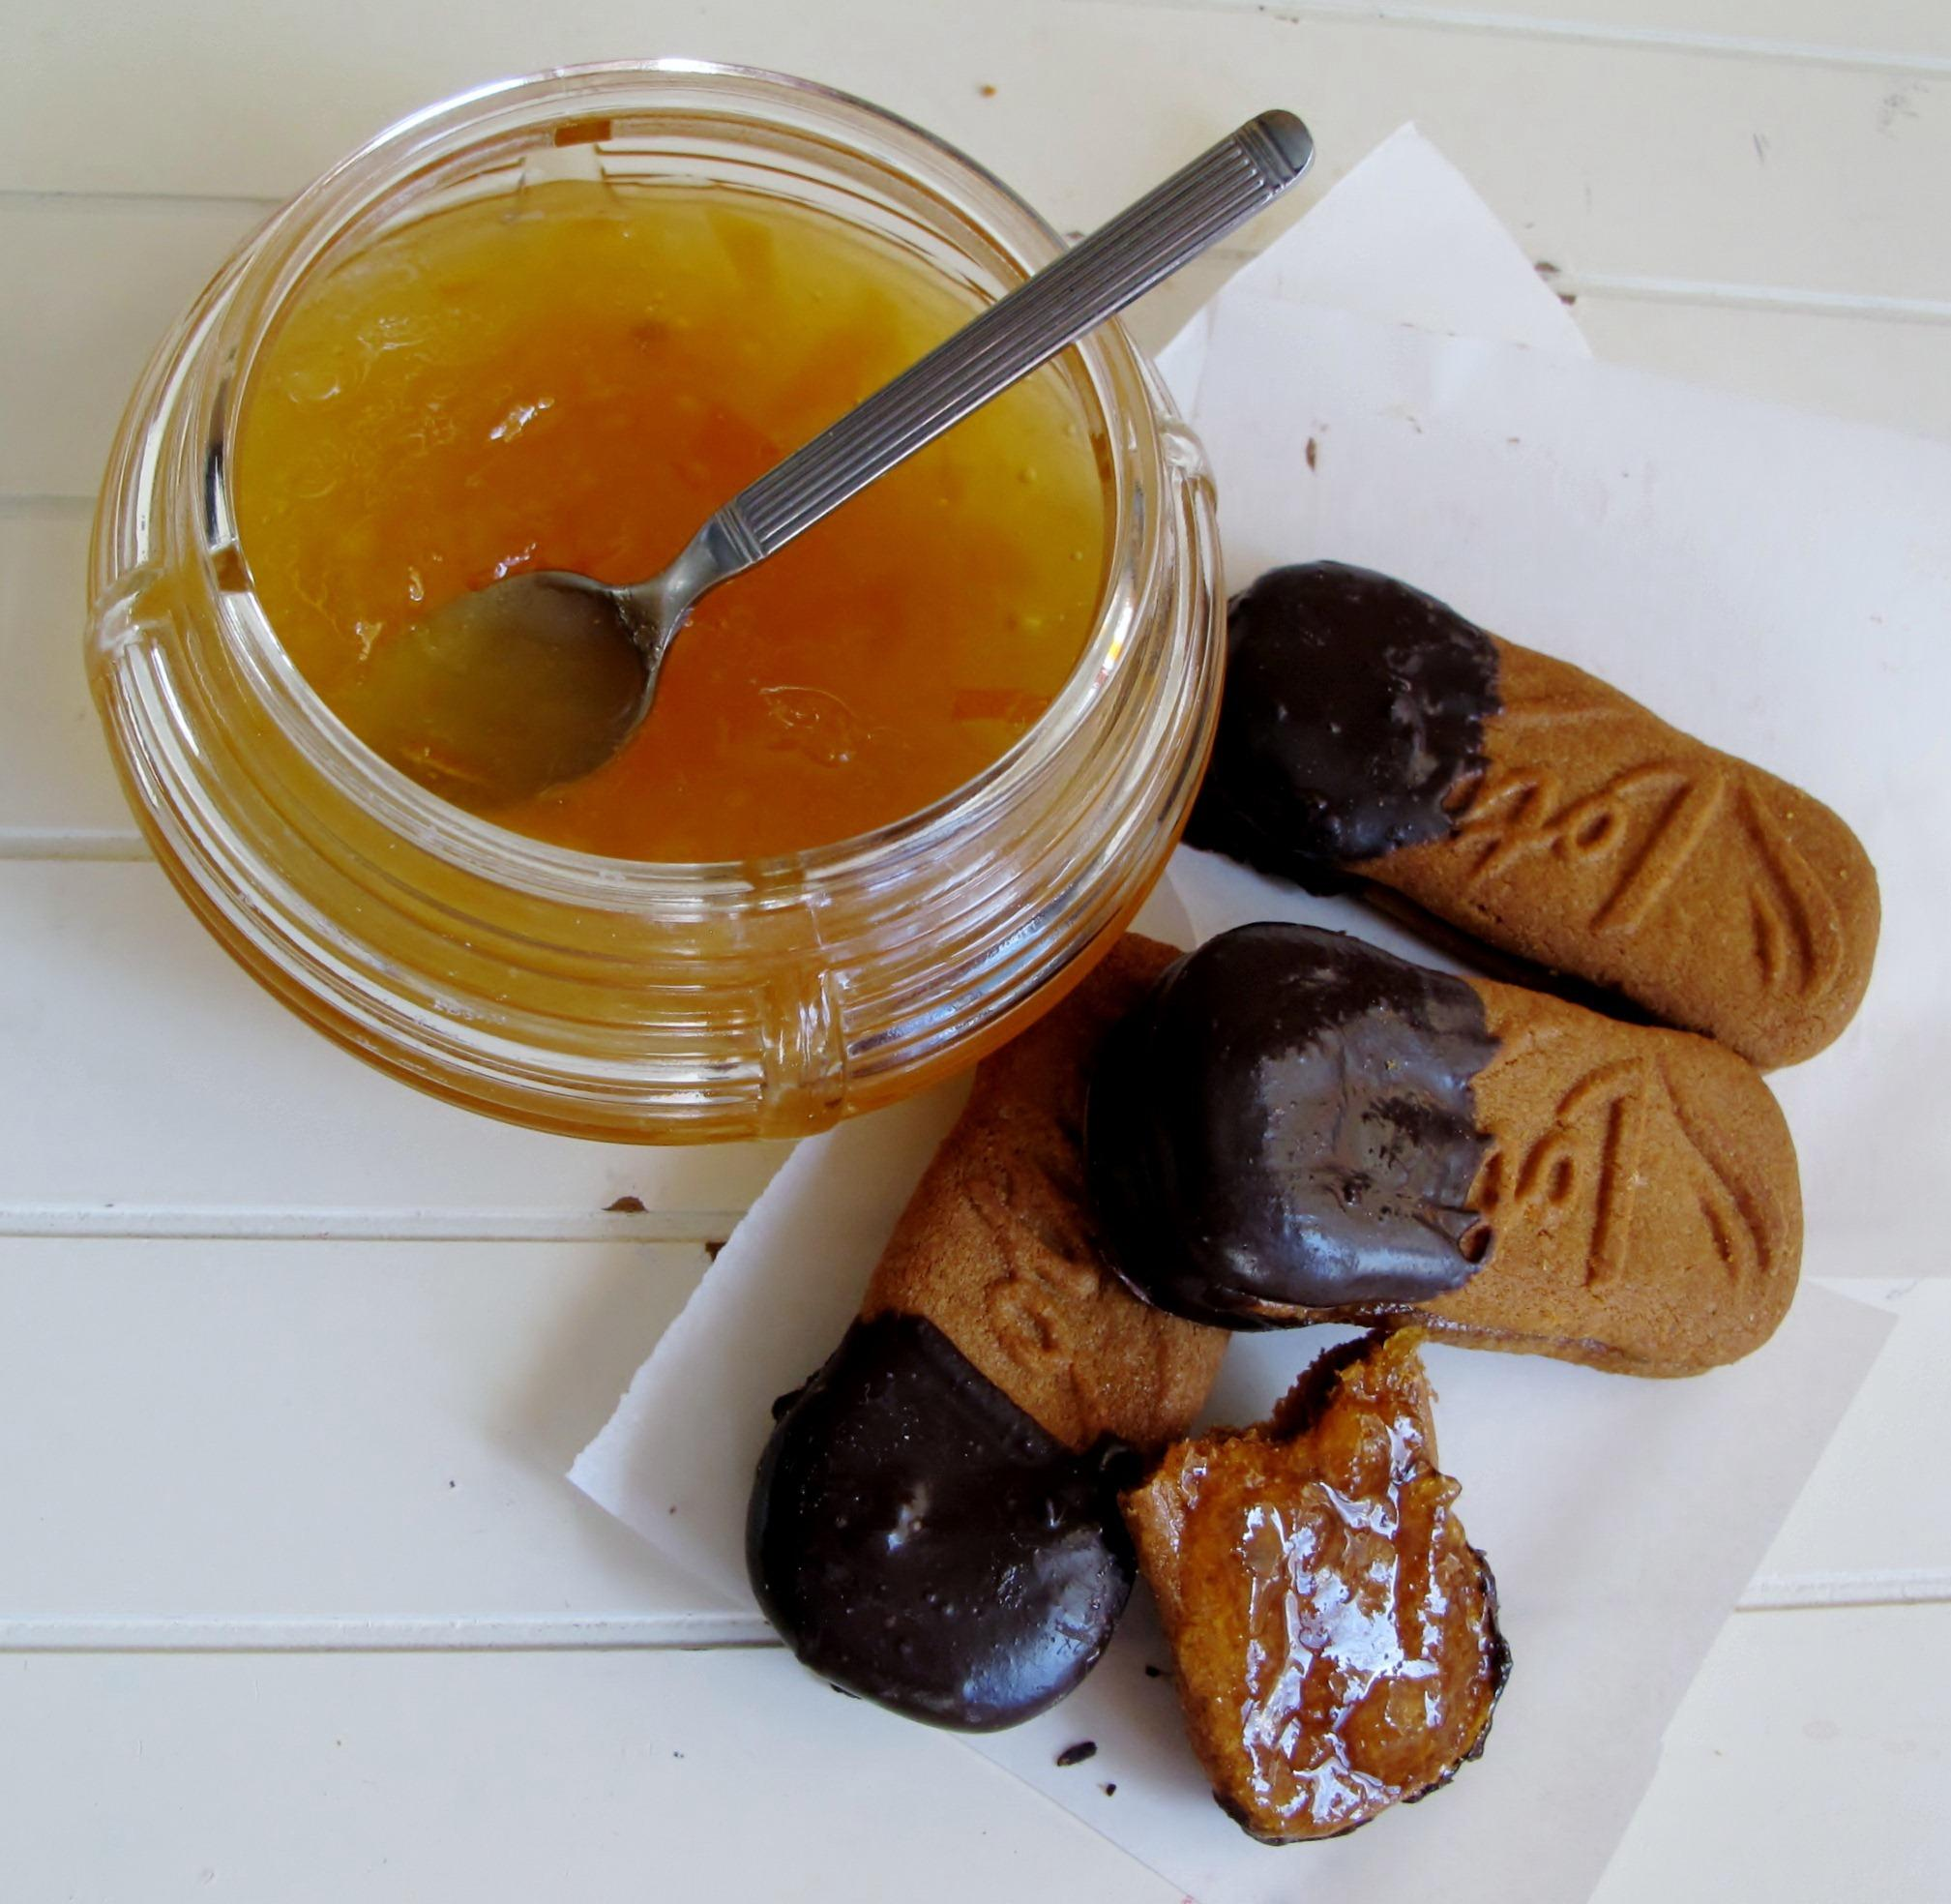 Orange Marmalade-Filled Cookies Dipped in Chocolate